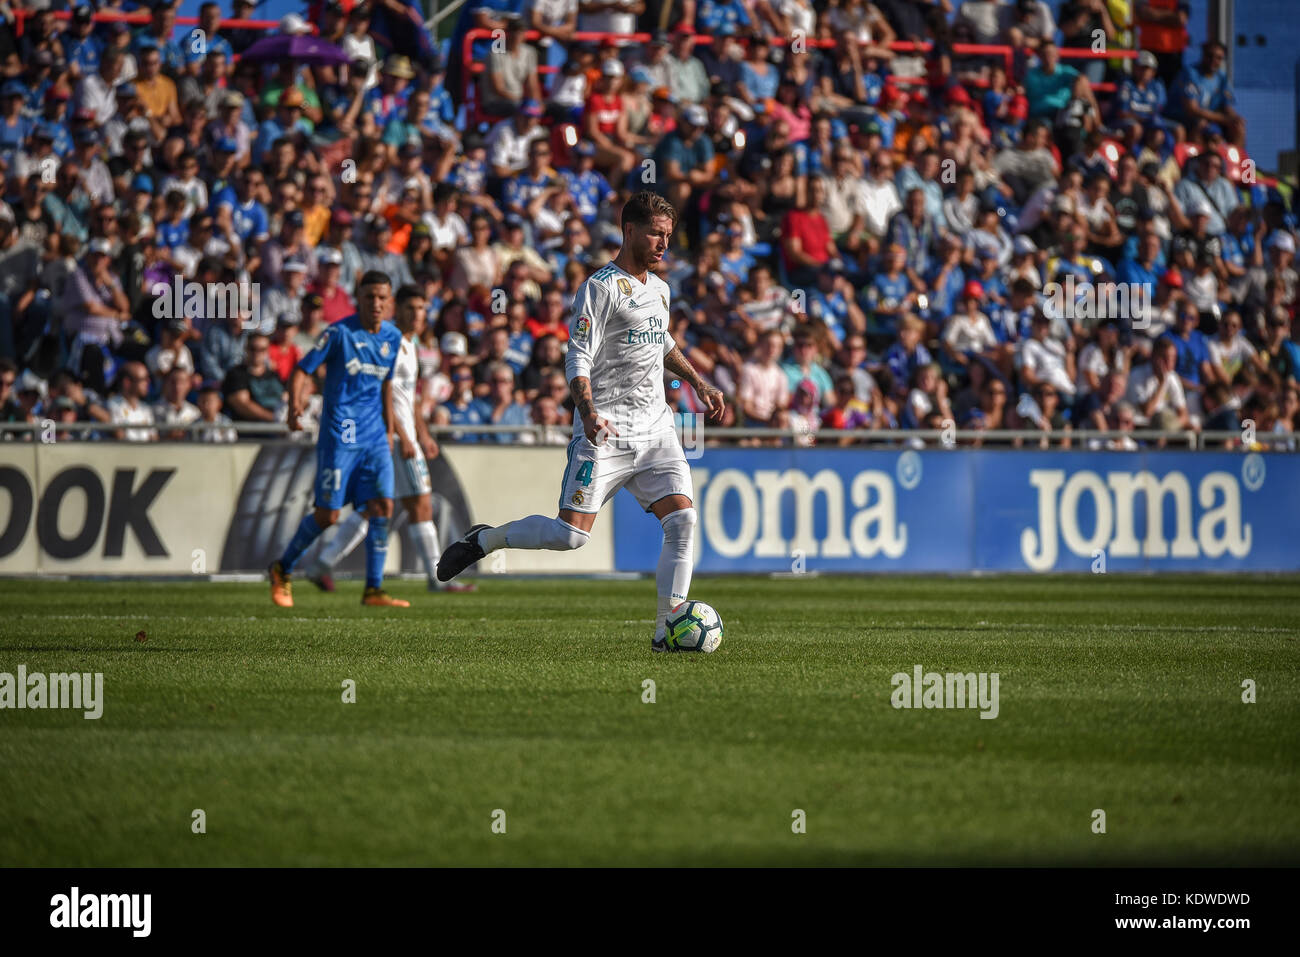 The football mach celebrate in Getafe´s stadium coliseum between Getafe C.F vs Real Madrid with result 1-2 - Stock Image